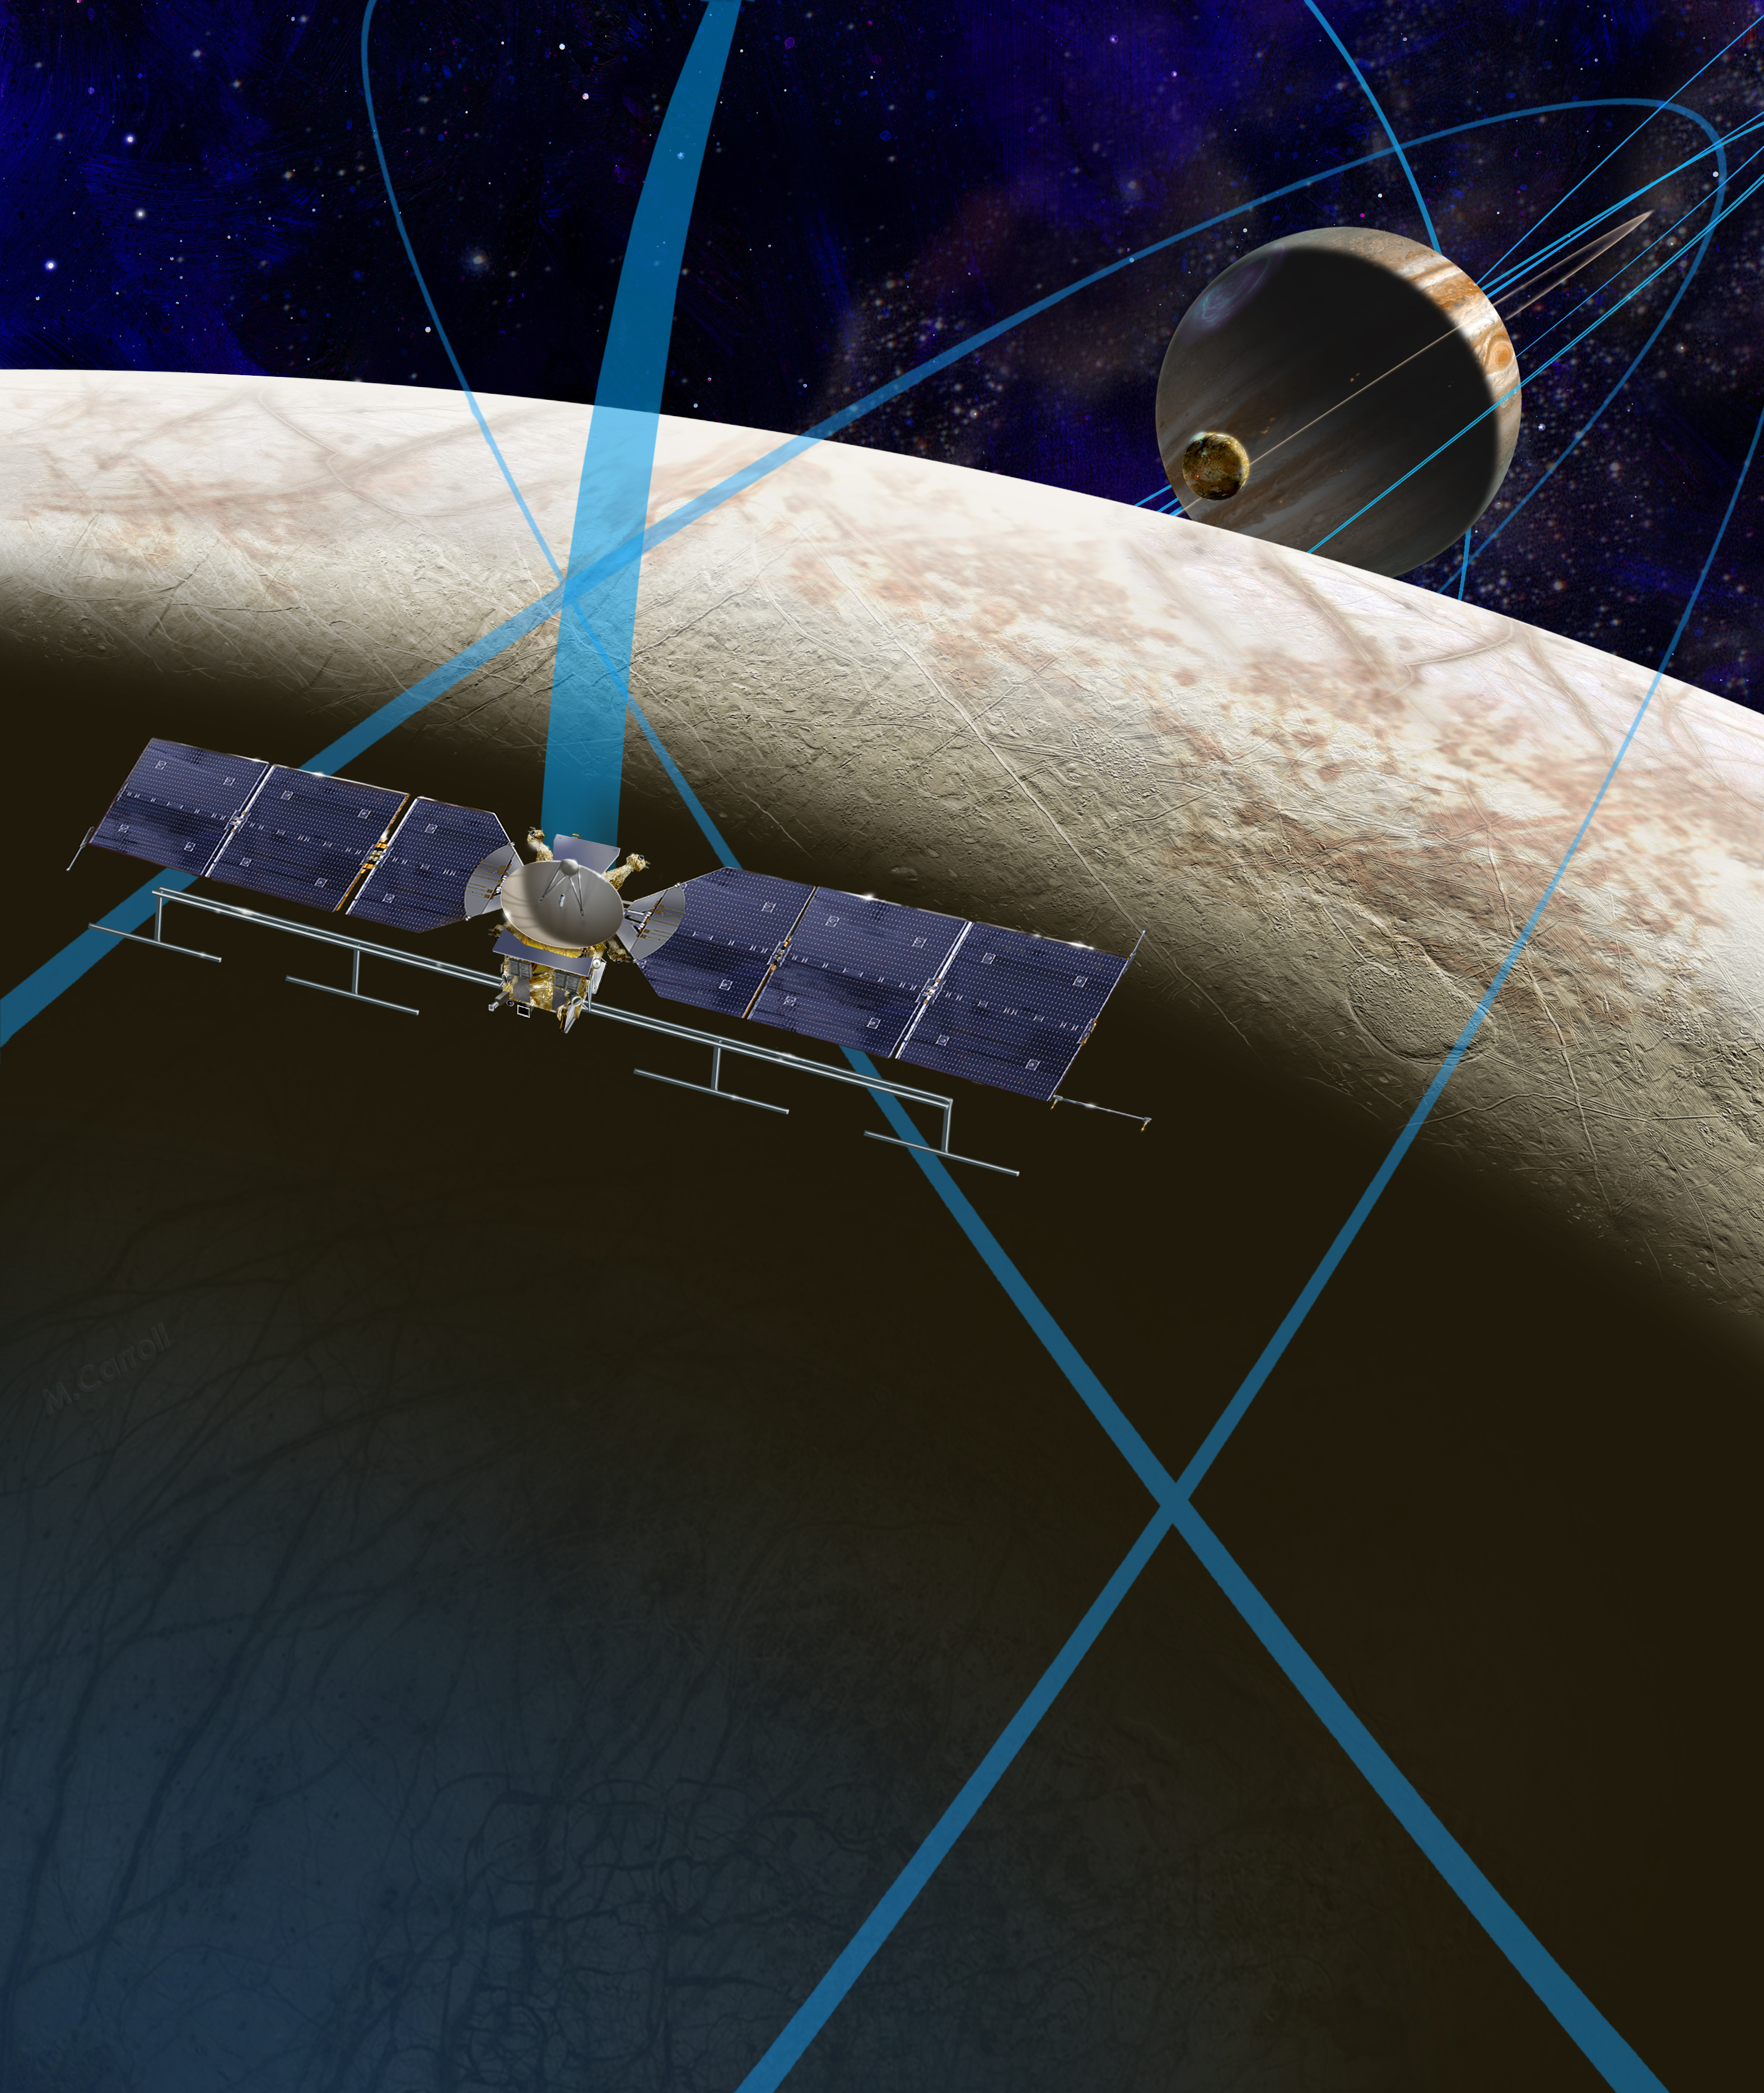 This artist's rendering shows a concept for a future NASA mission to Europa in which a spacecraft would make multiple close flybys of the icy Jovian moon, thought to contain a global subsurface ocean.